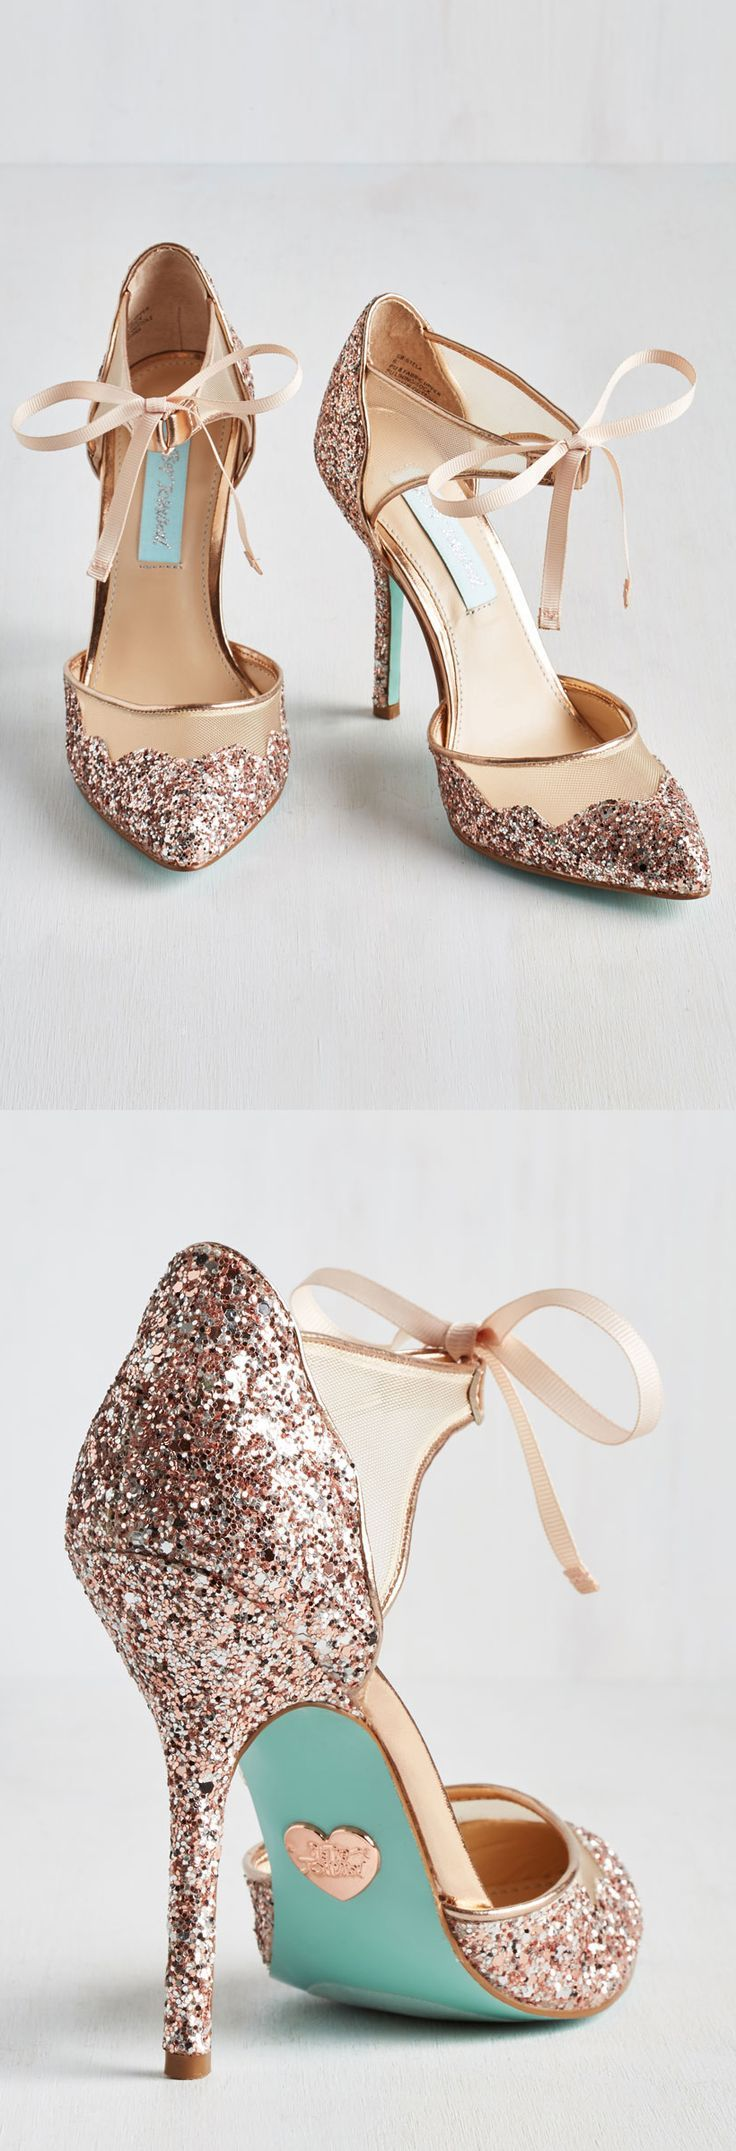 15 amazing gift ideas for her beautiful wedding and